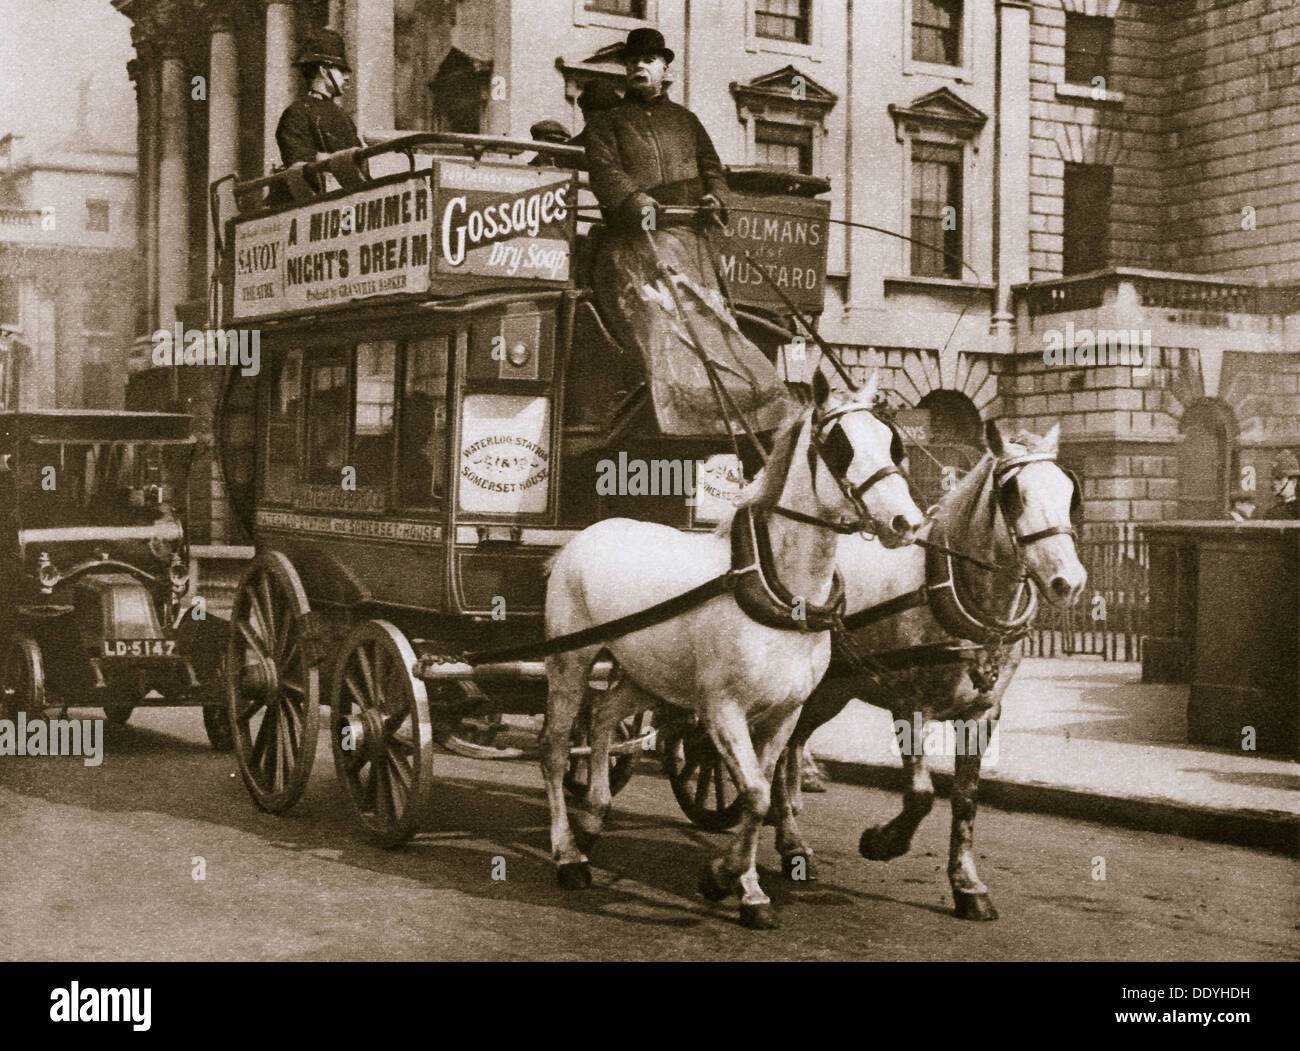 London omnibus, early 20th century. Artist: Unknown - Stock Image